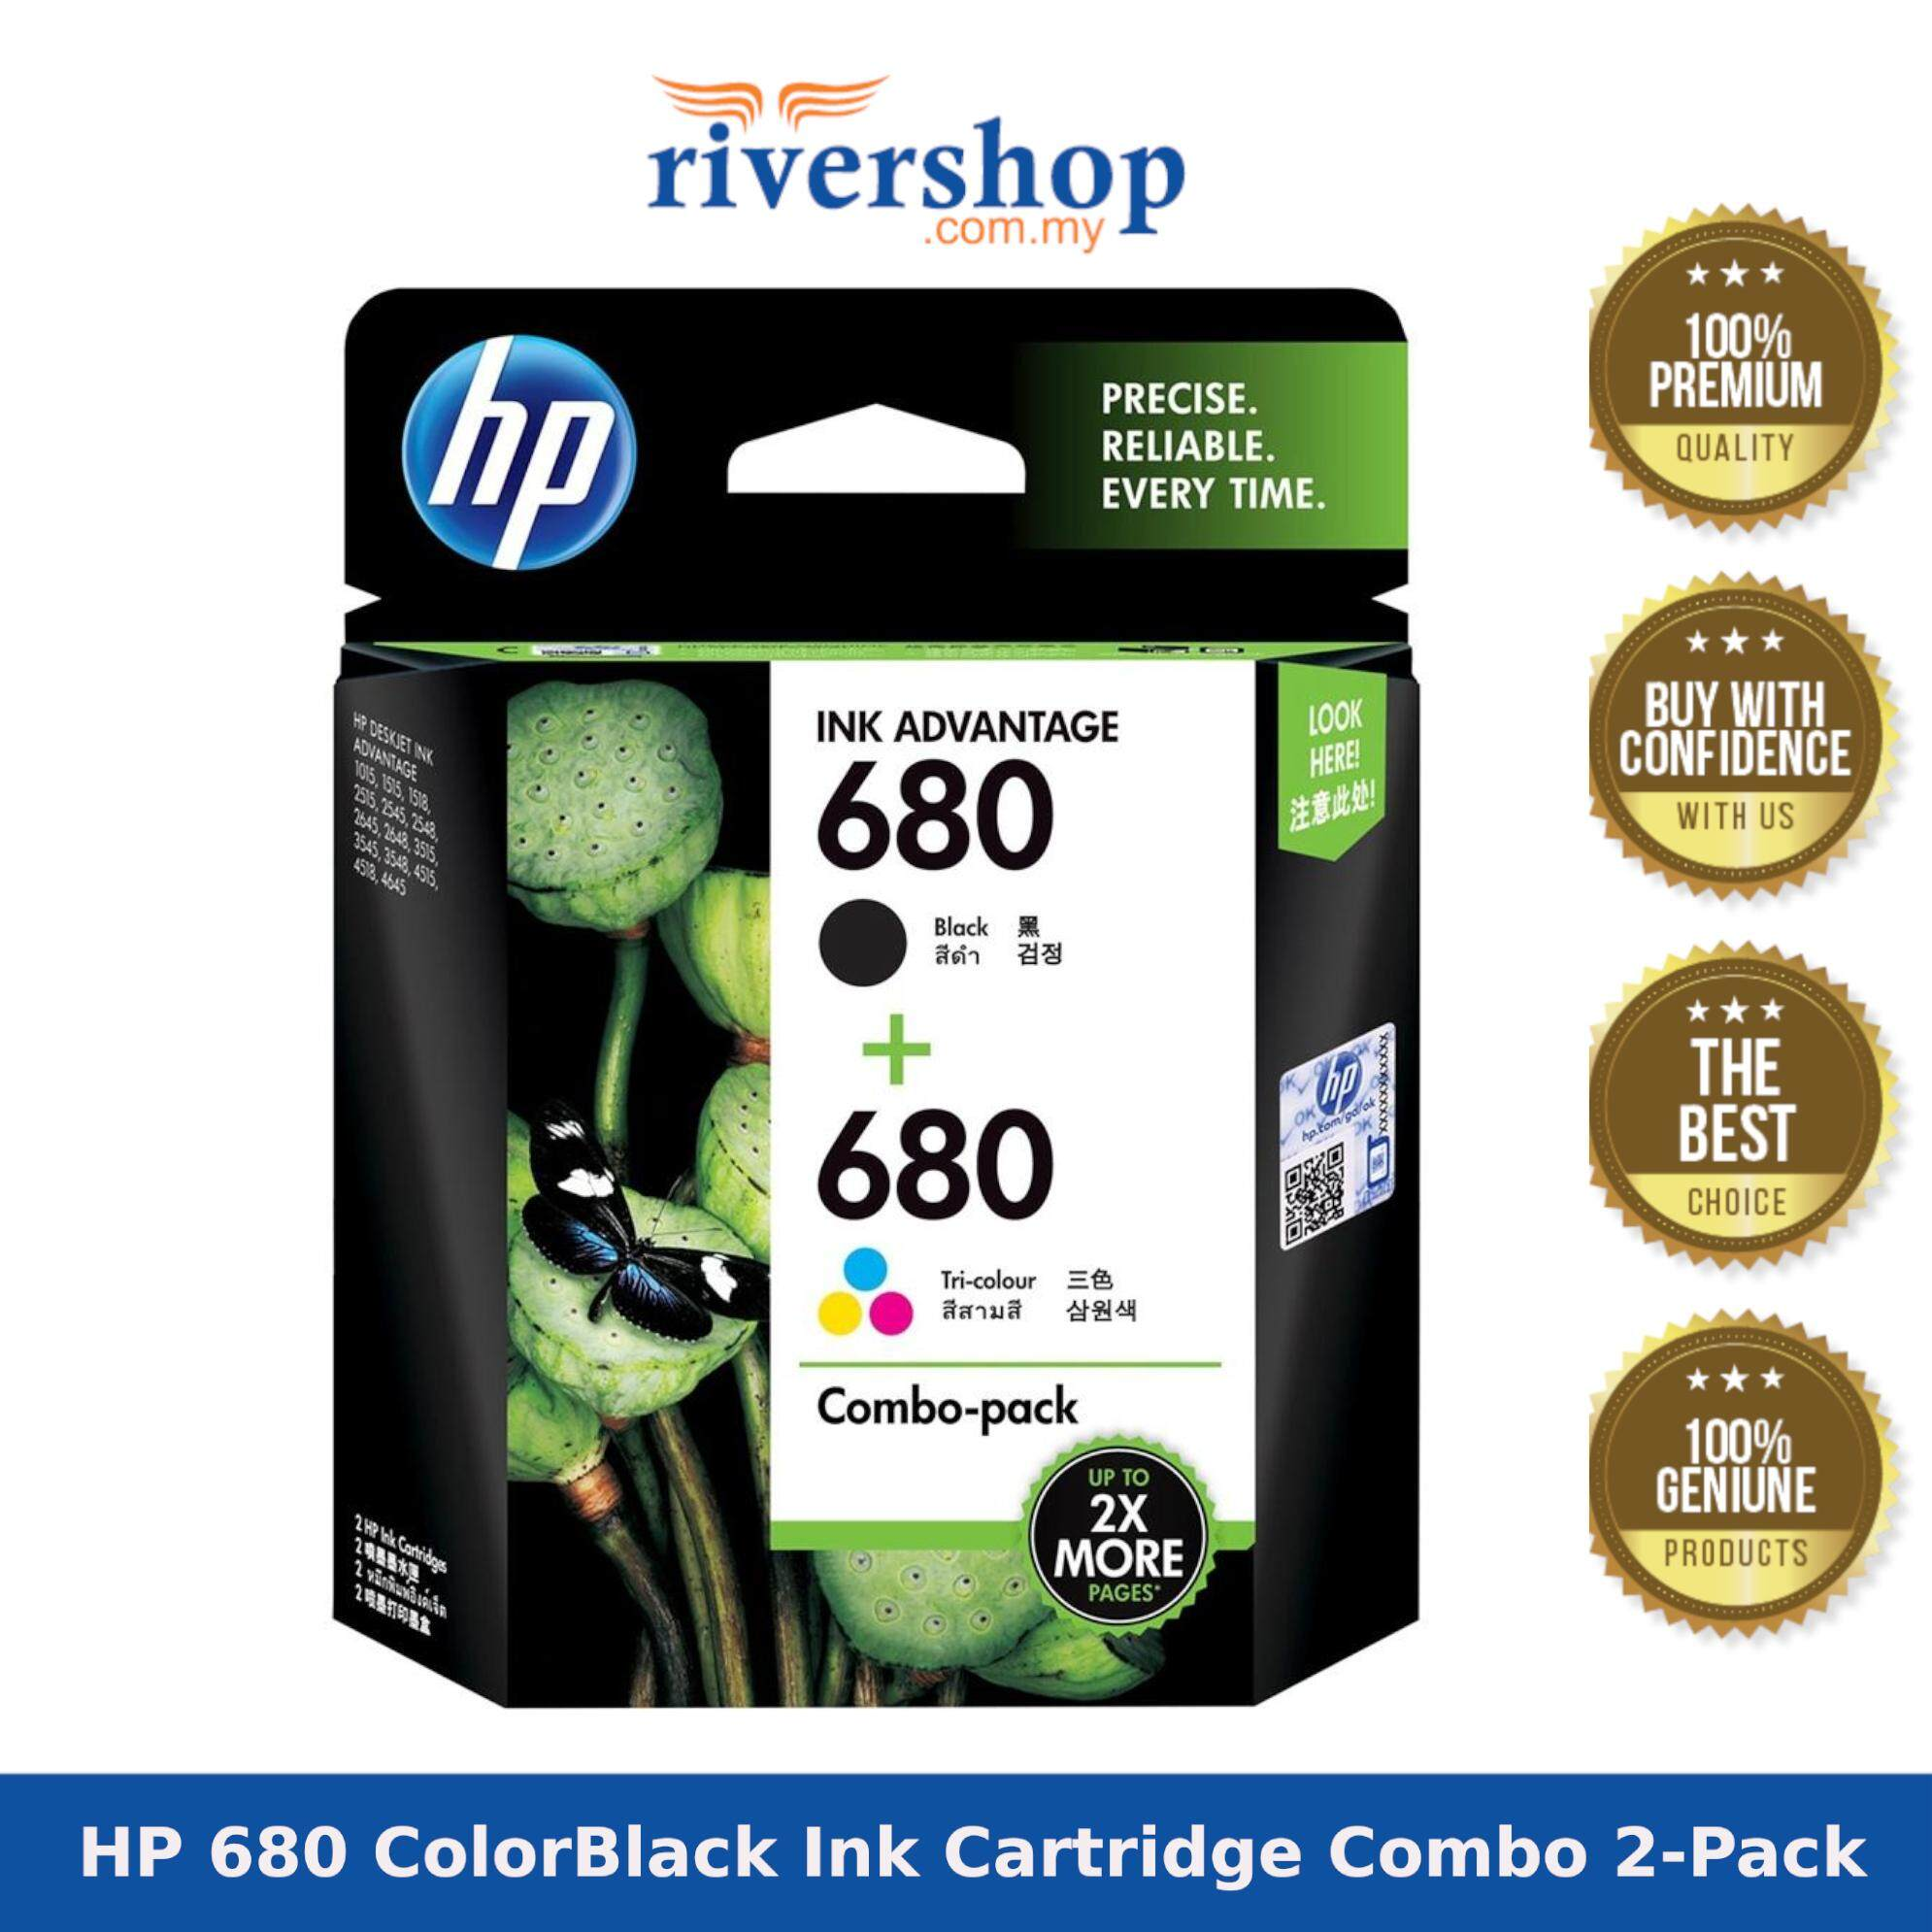 HP 680 Color/Black Ink Cartridge Combo 2-Pack